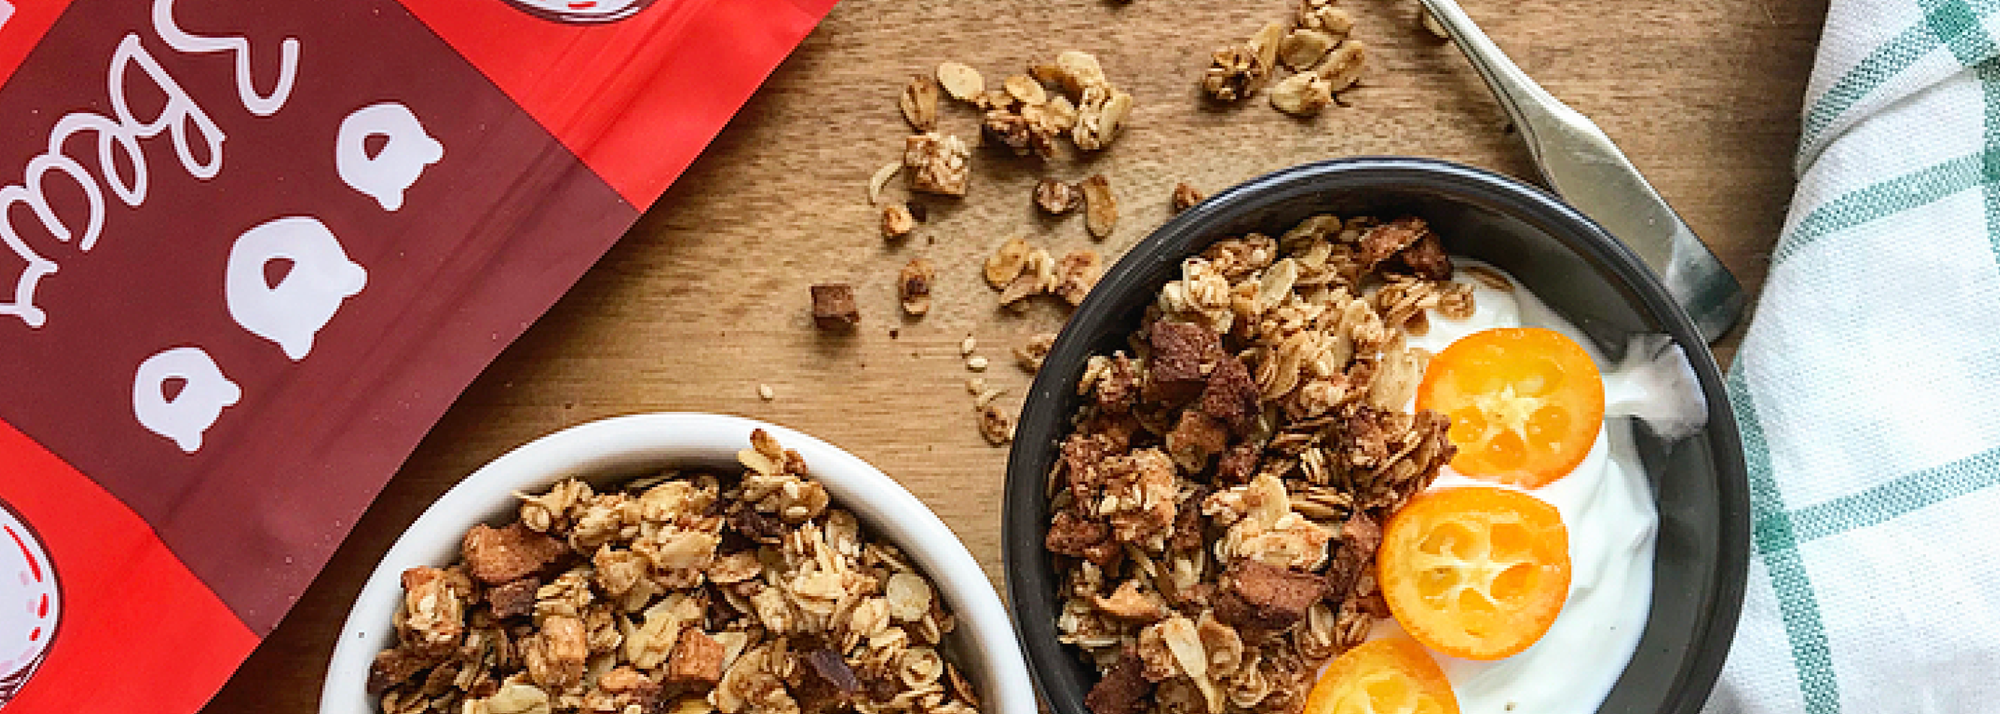 Cinnamon apple granola with cardamom